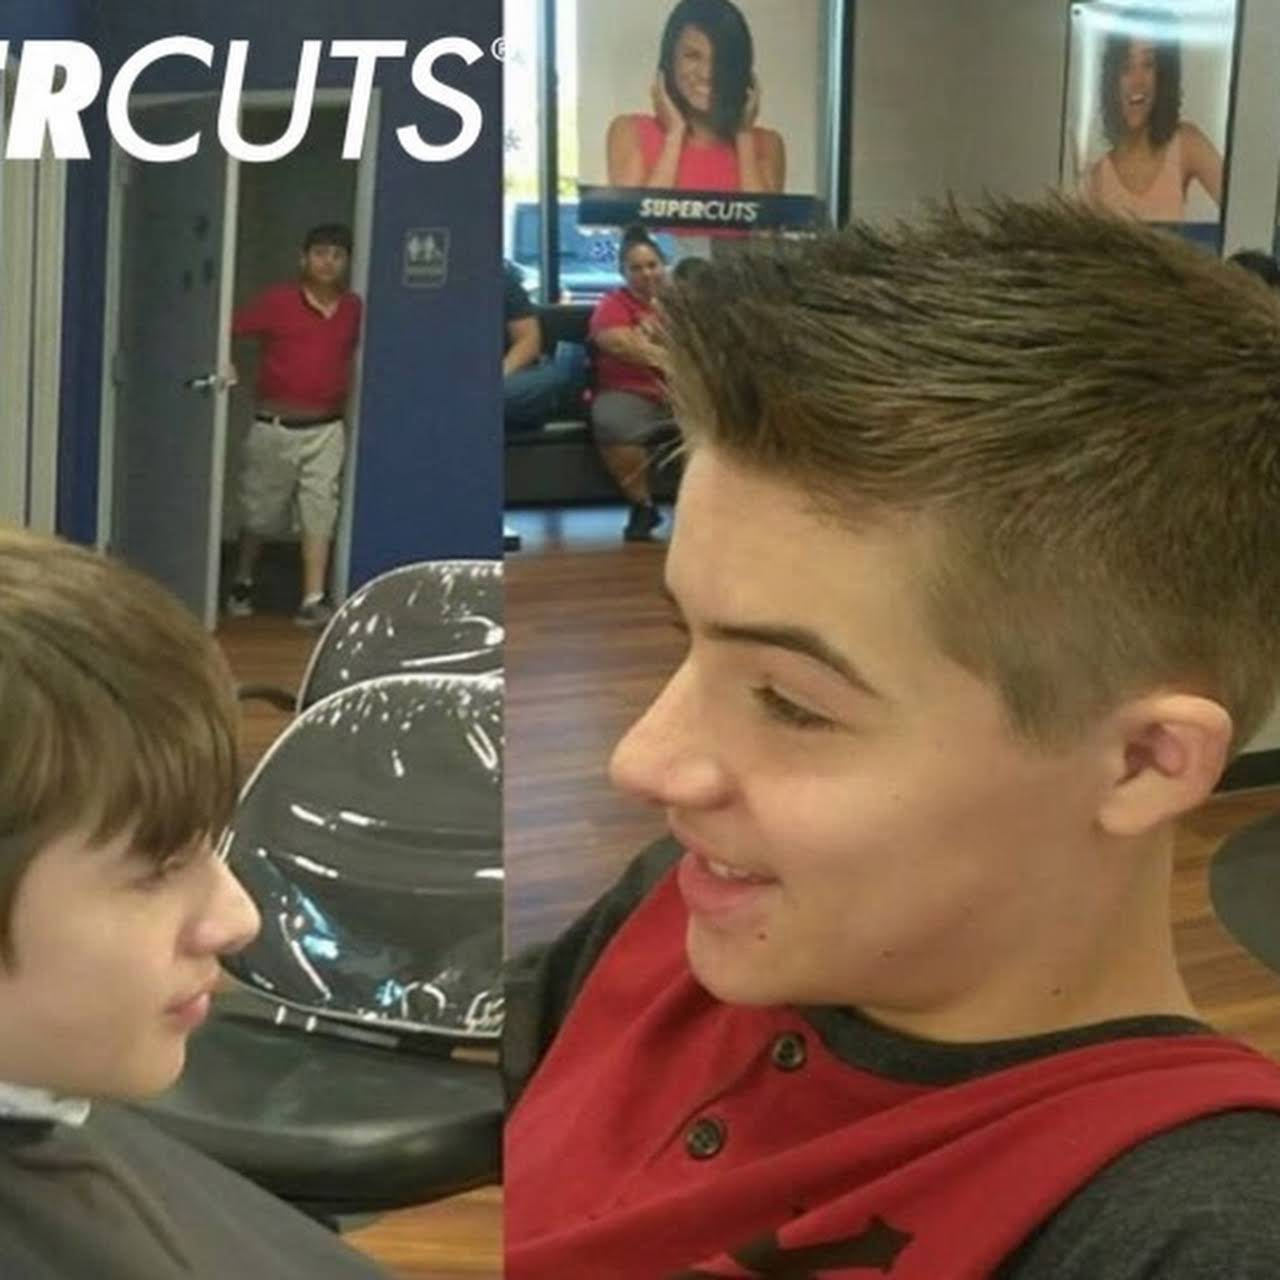 Supercuts Full Service Hair Salon In Tempe